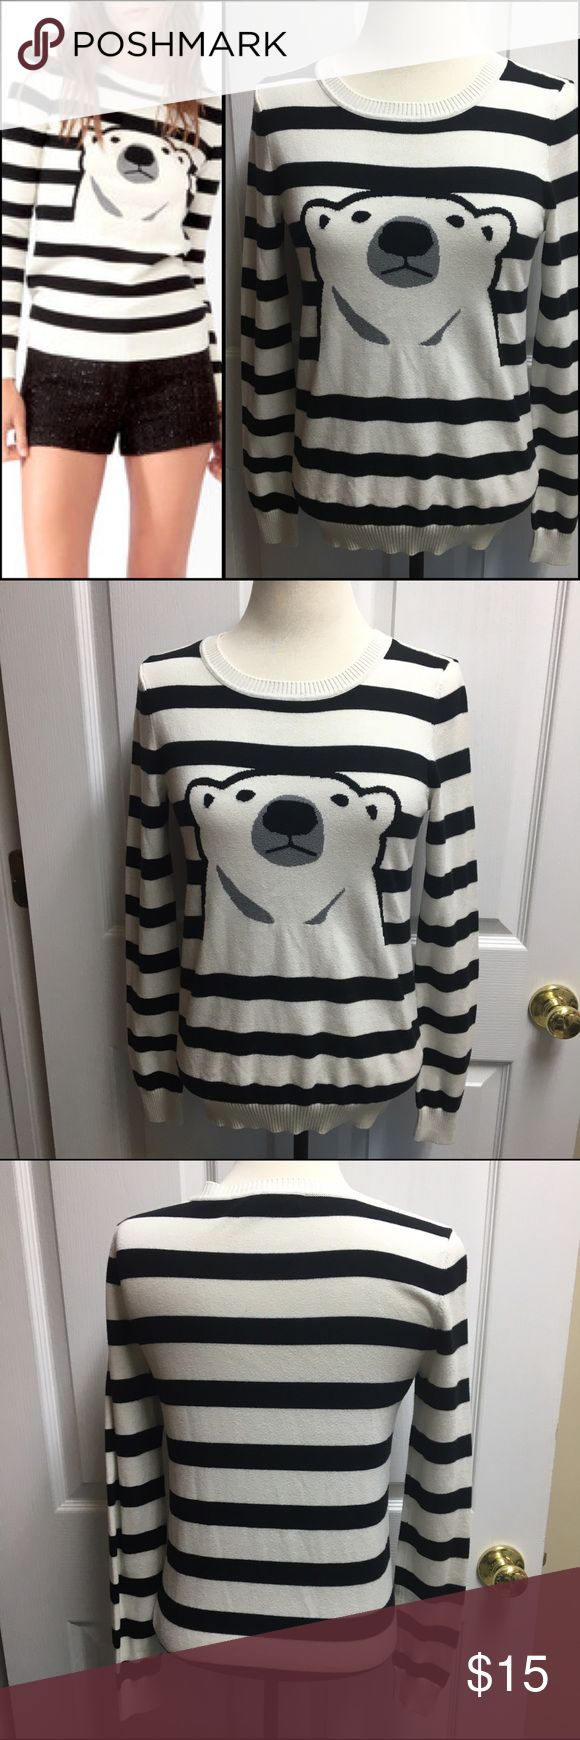 """Forever 21 polar bear sweater Adorable, soft and comfy polar bear sweater by Forever 21, size S. Measures 23"""" long, 15"""" pit to pit. Excellent used condition, smoke free home. Forever 21 Sweaters Crew & Scoop Necks"""